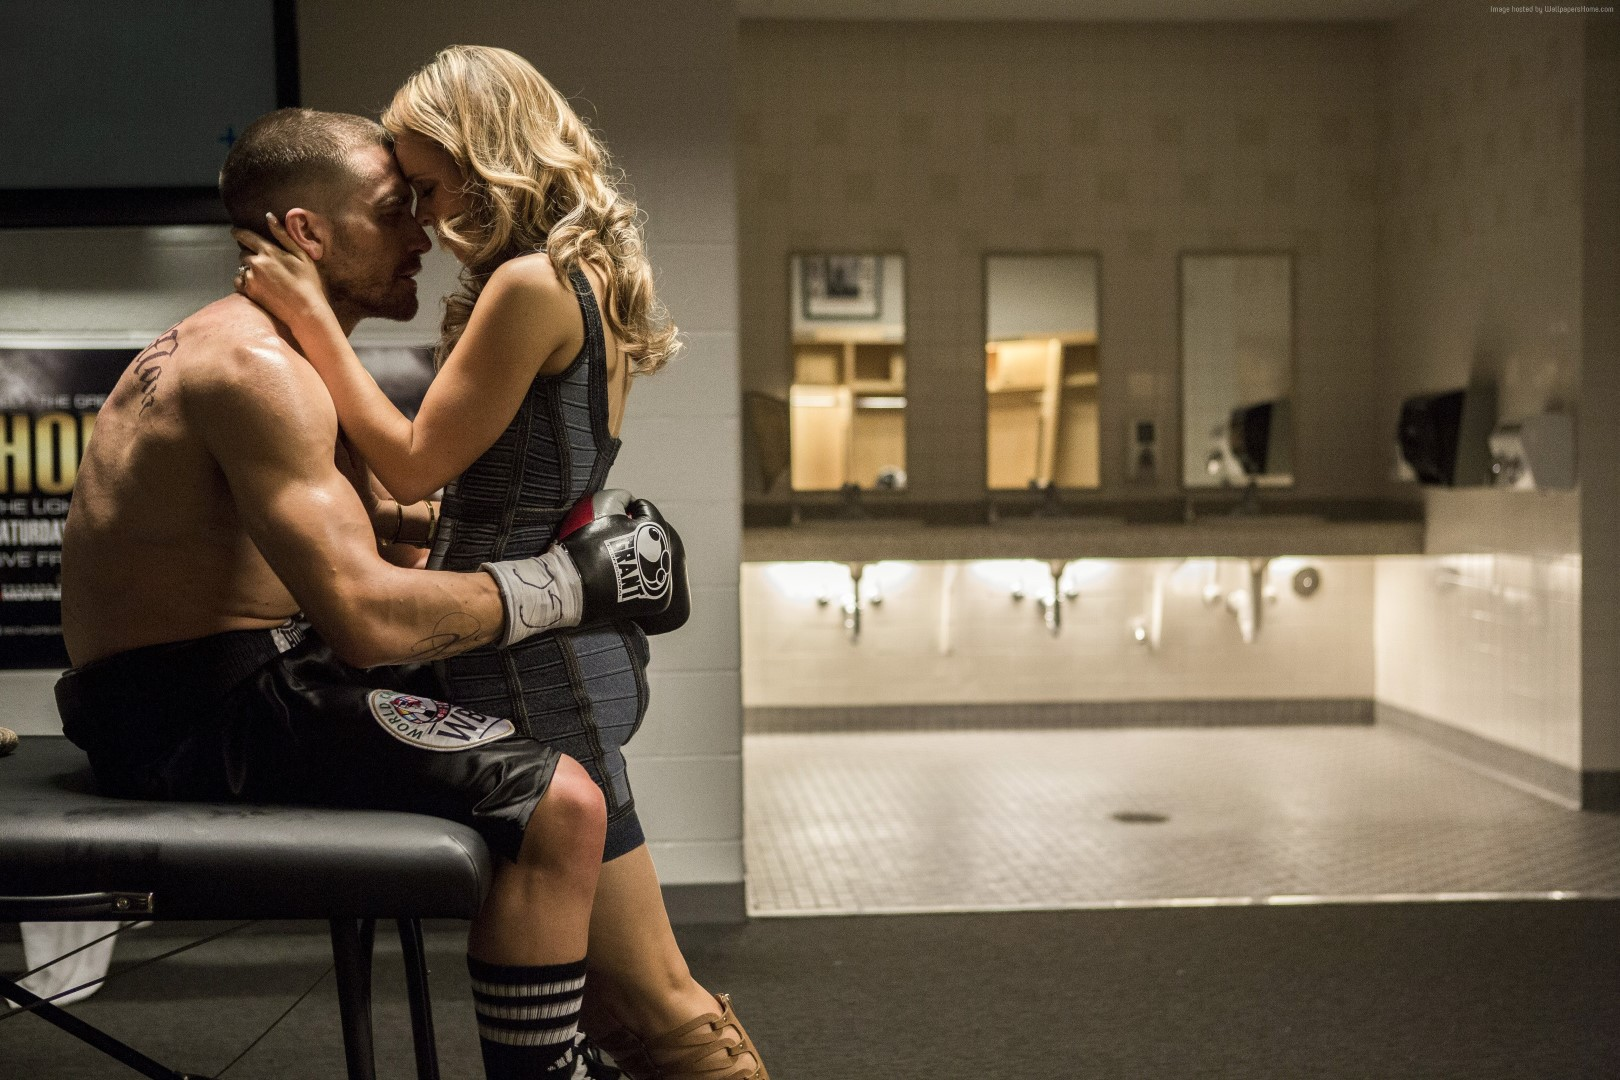 southpaw-3000x2000-best-movies-of-2015-movie-rachel-mcadams-jake-6770